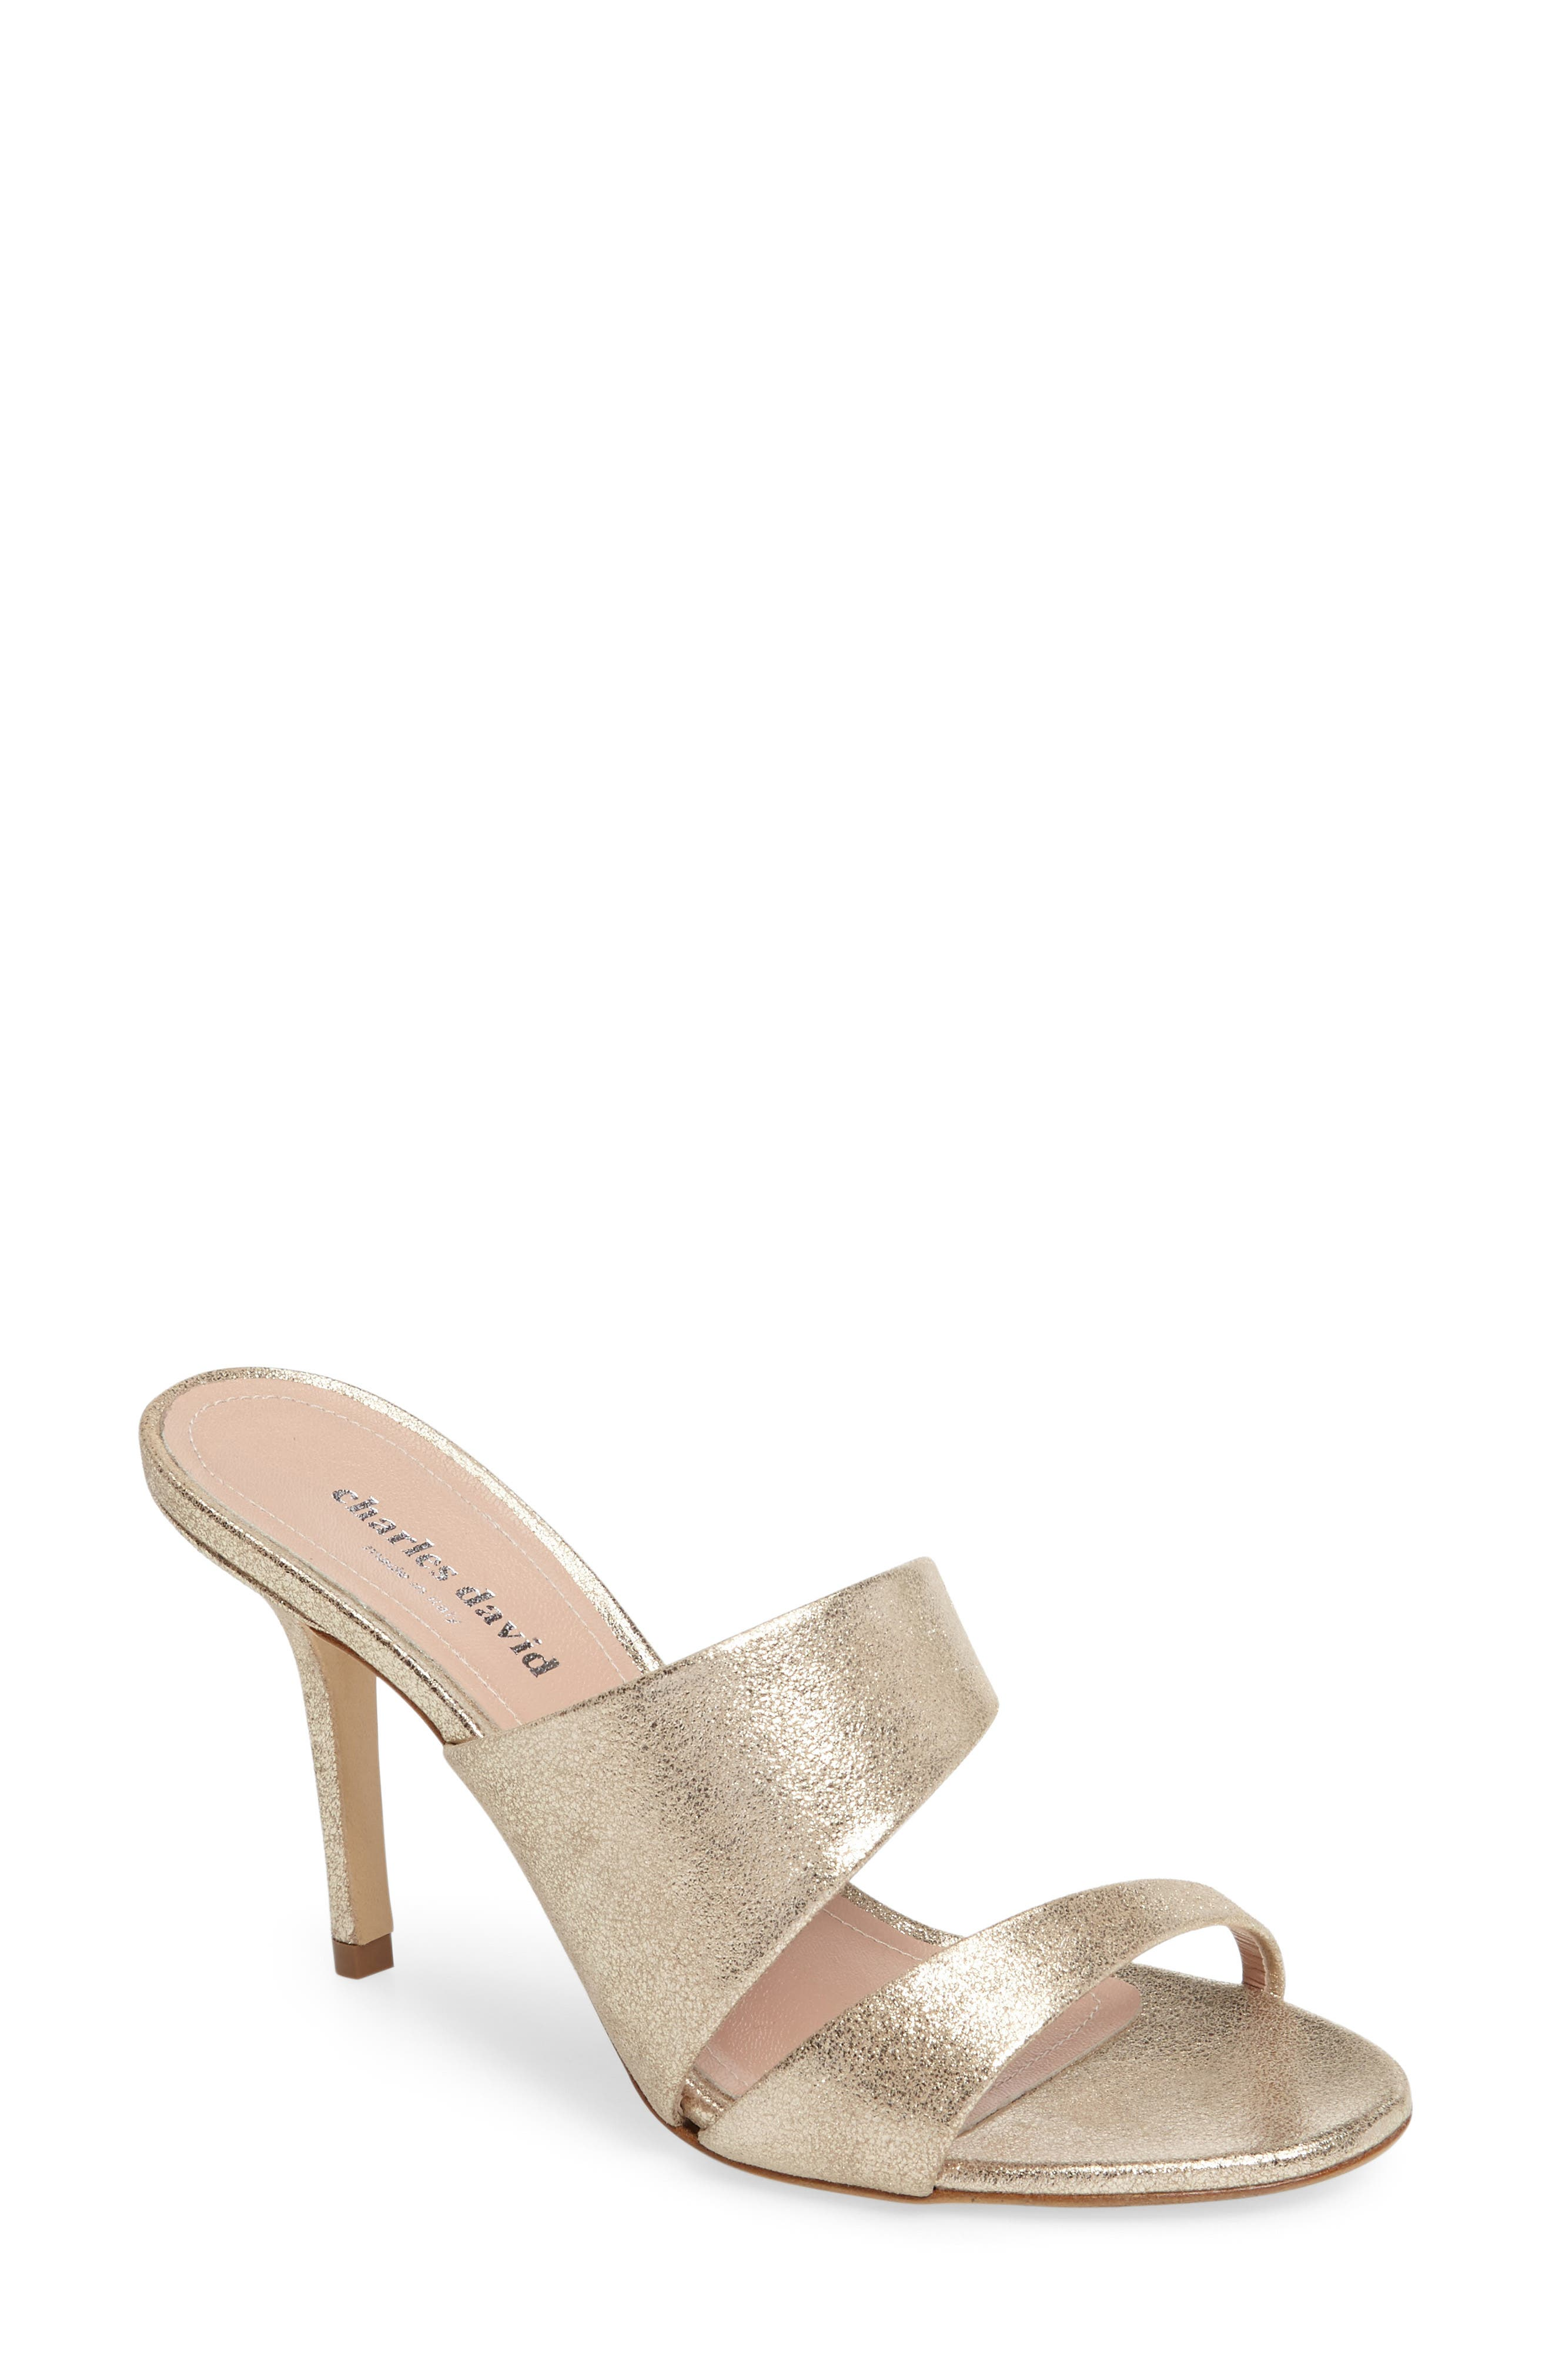 Status Sandal,                         Main,                         color, Champagne Leather